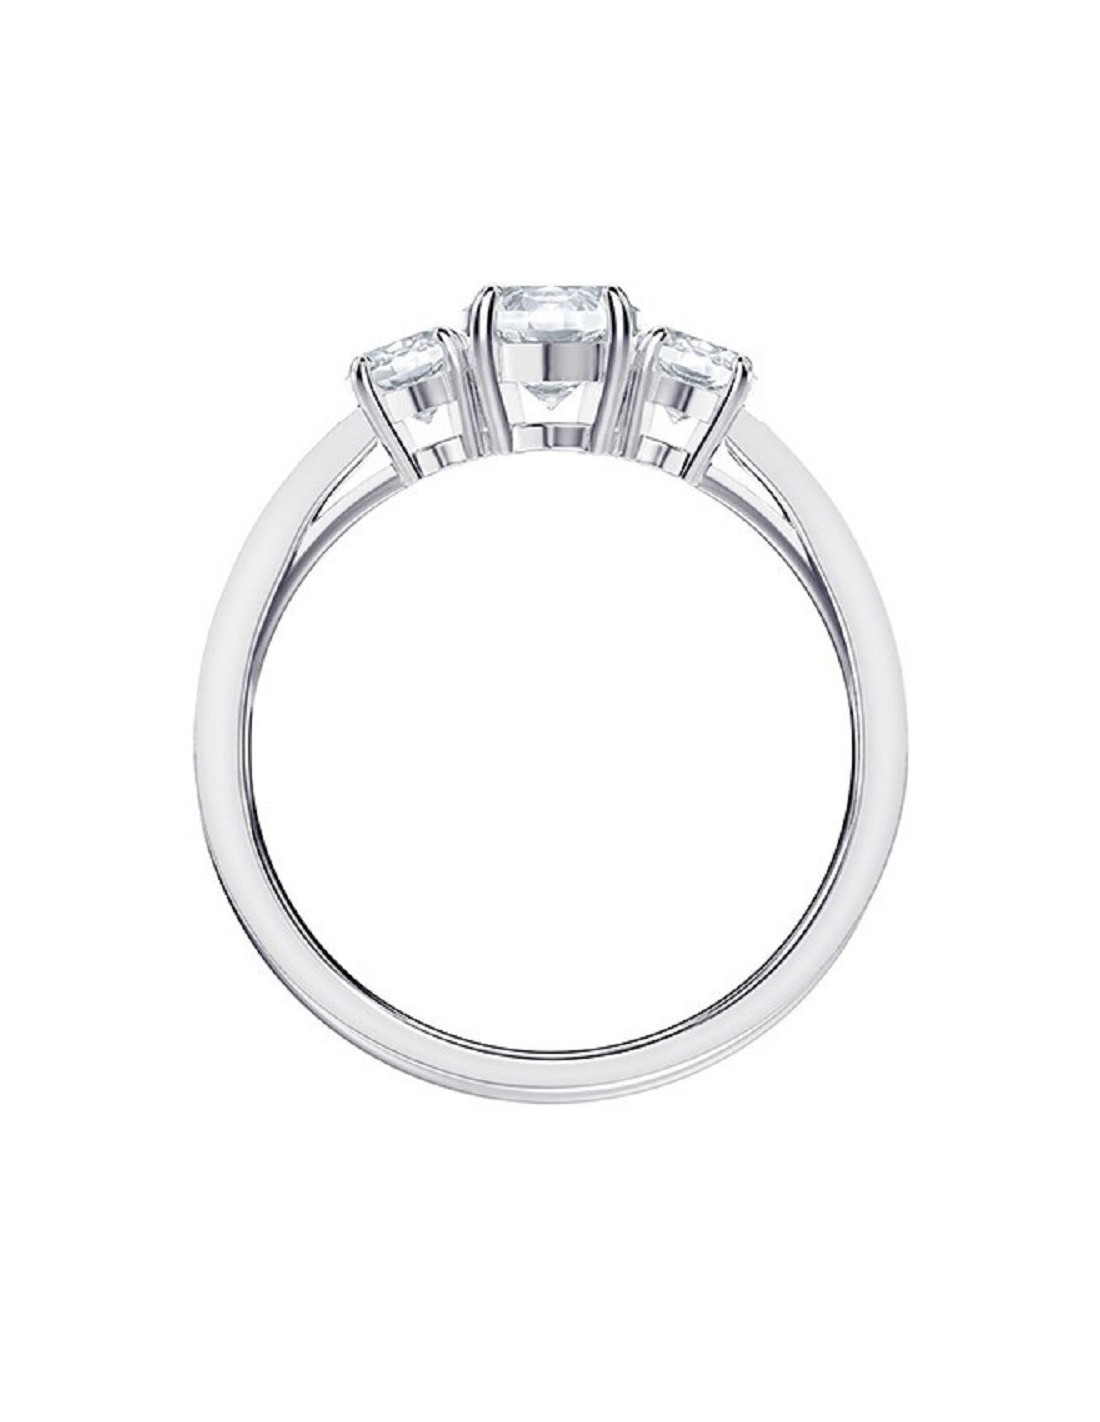 bc418237e3a69 Ring Attract Trilogy Round rhodium-plated Swarovski jewels